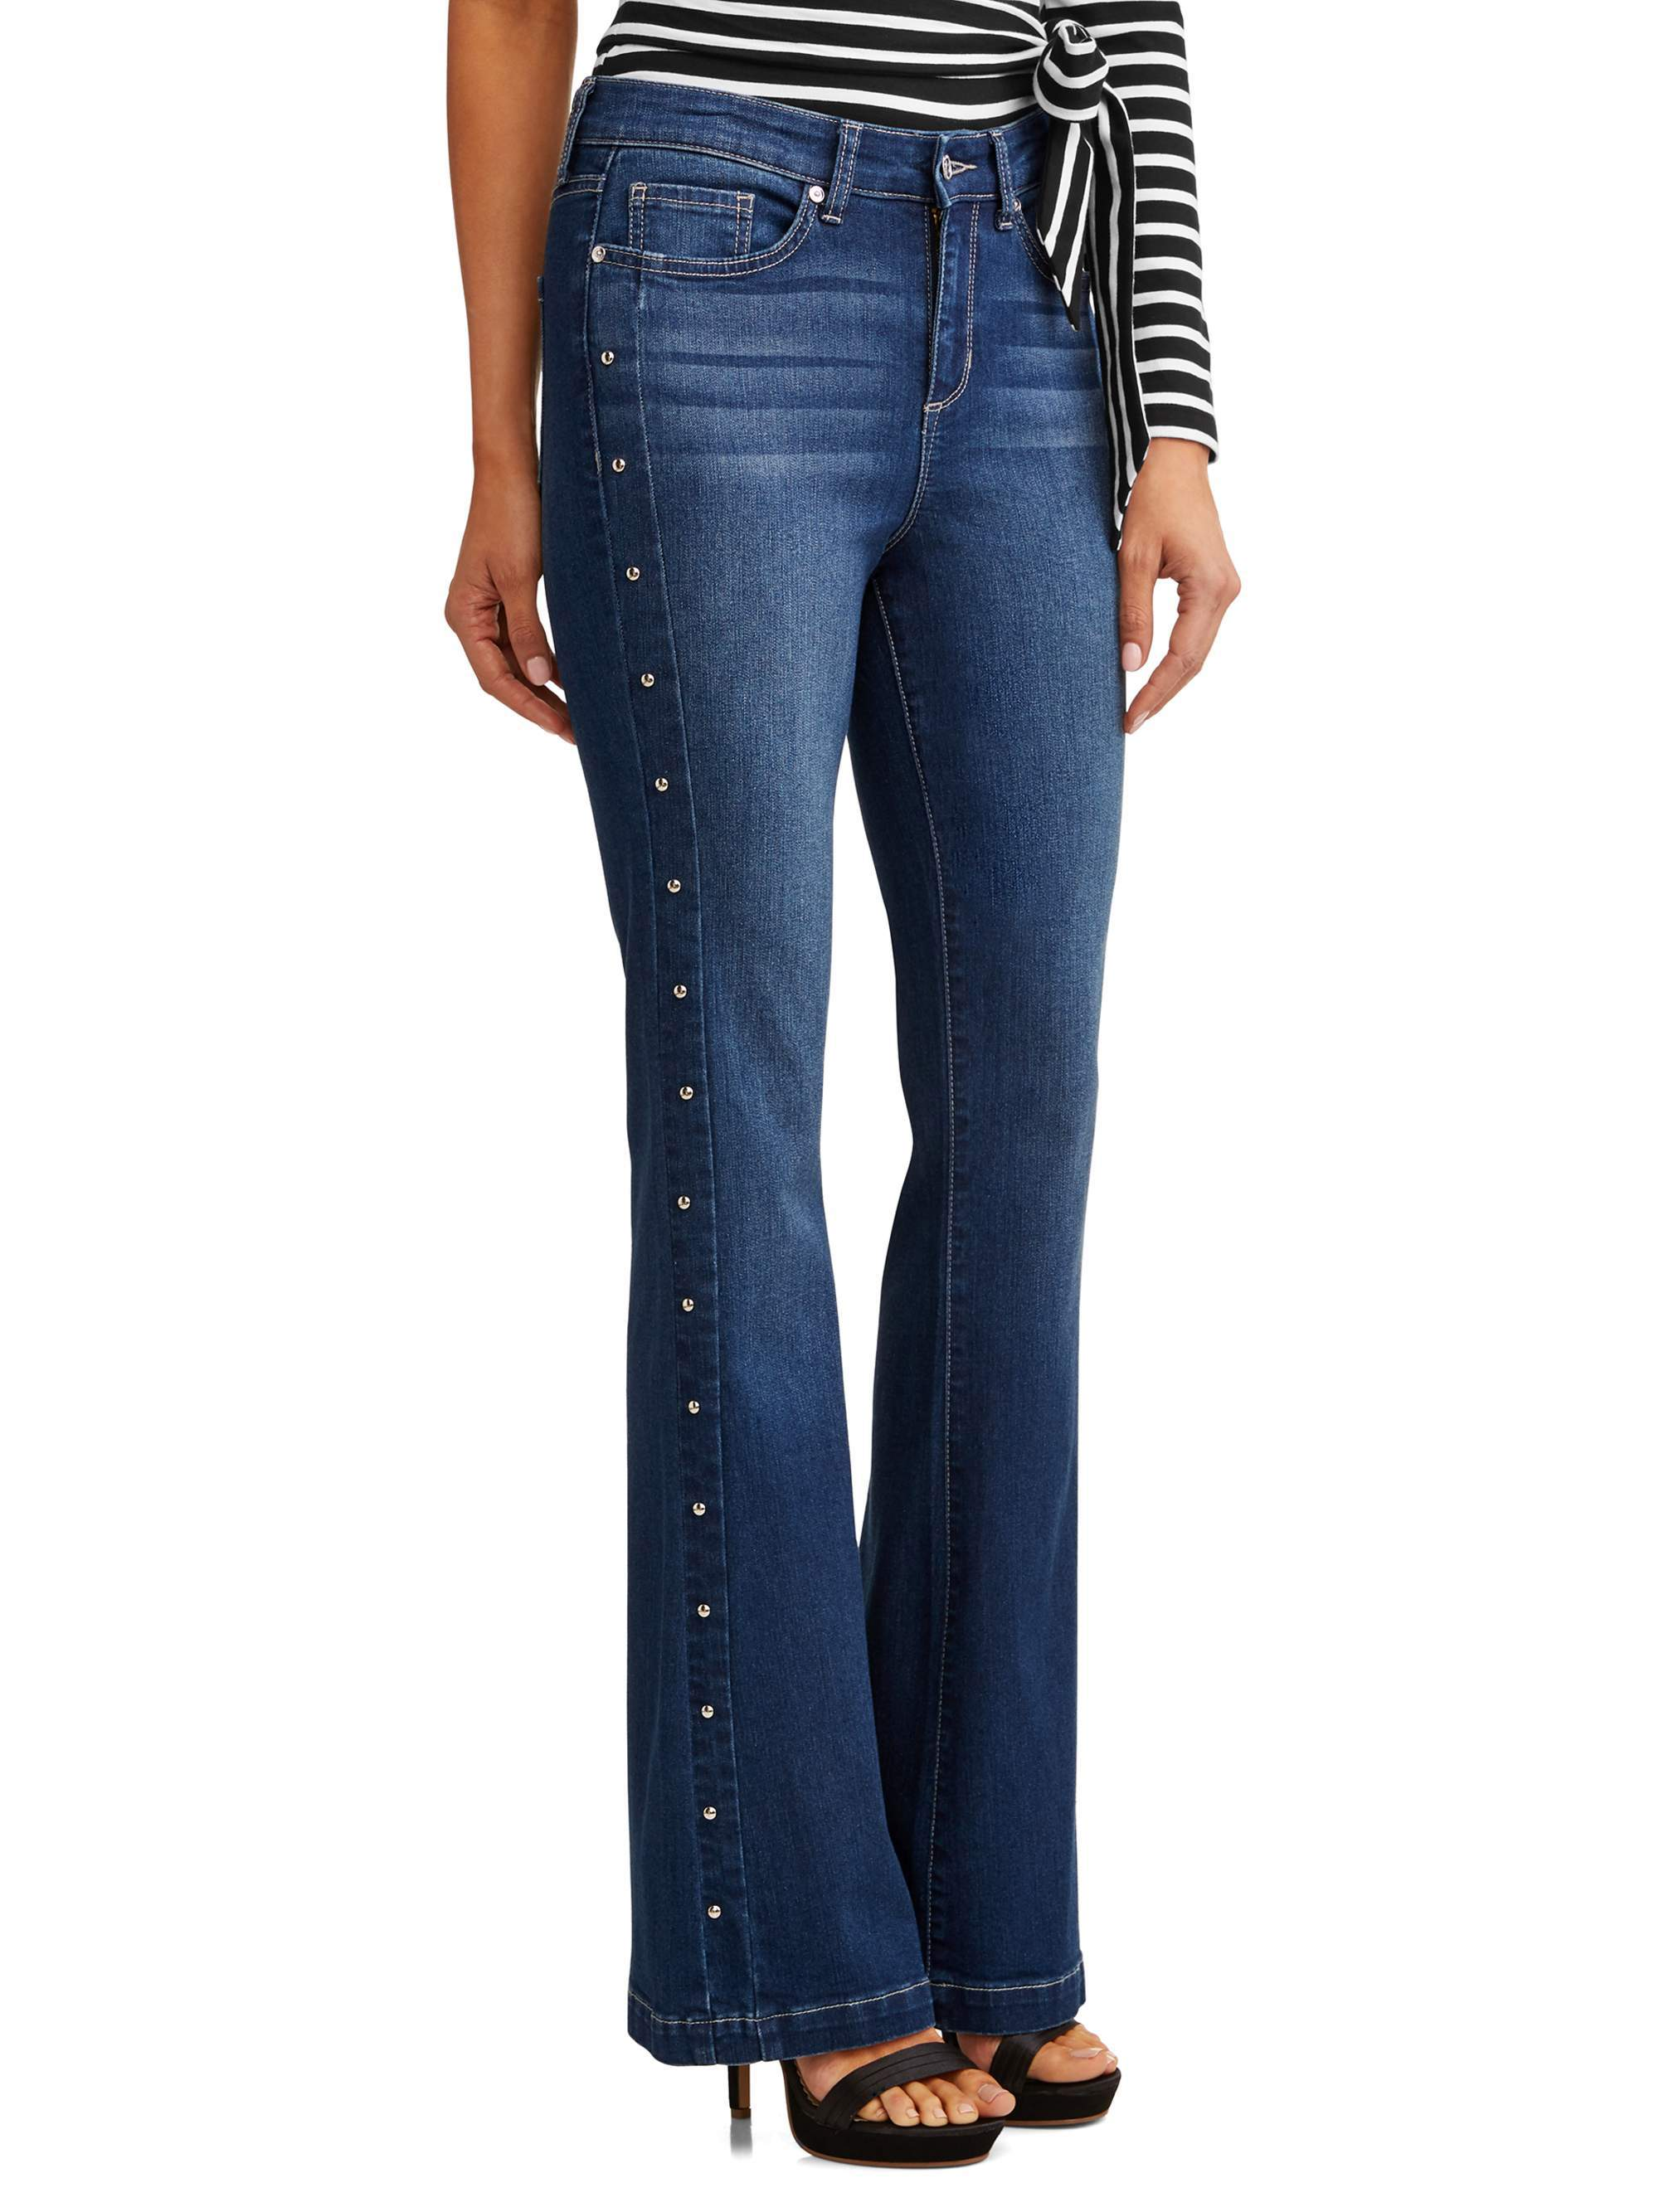 Gloria Studded Sides High Waist Stretch Flare Jean Women's (Medium Indigo Wash)